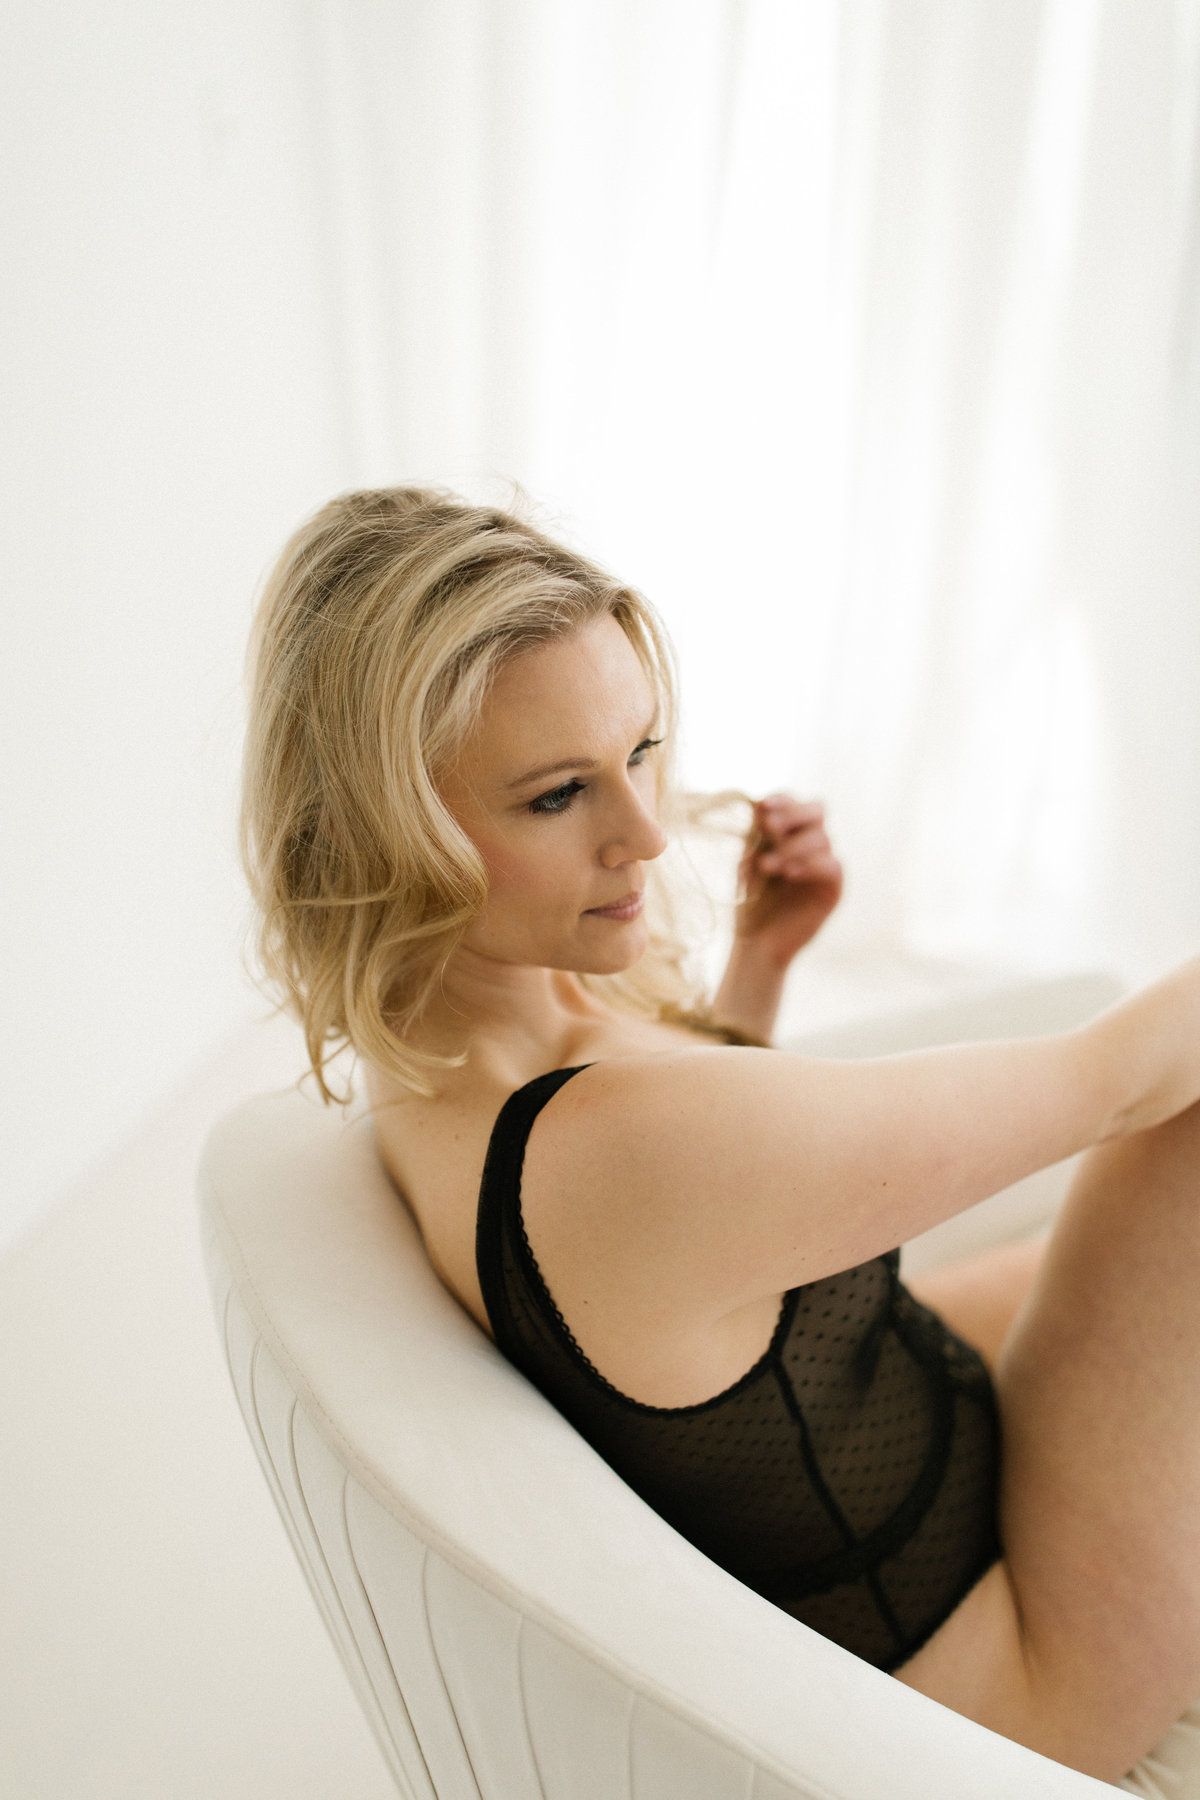 Fine art boudoir photographer, Laurie Baker captures beautiful blonde woman in black